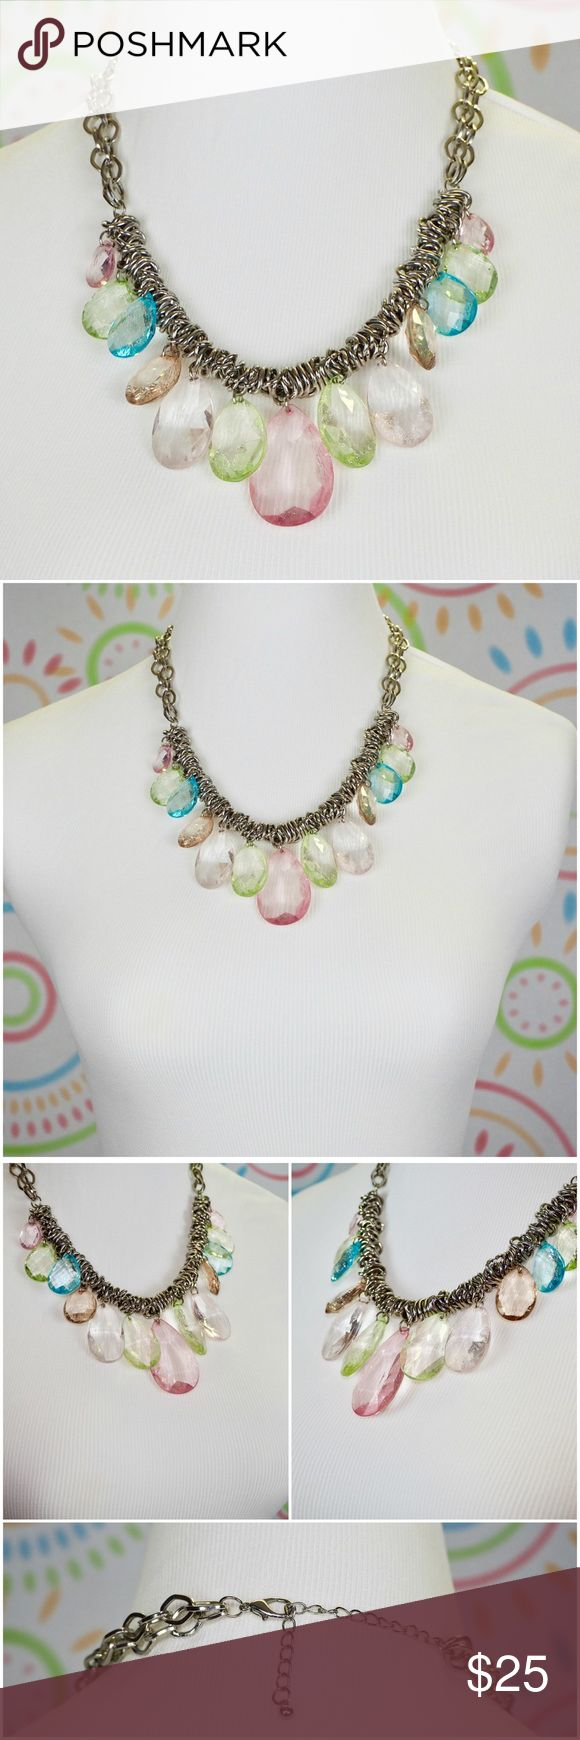 "Women Chunky Statement Bib Multi Color Necklace Style: Bib Metal: Stainless Steel Stone: Acrylic   Length: 18"" with 3"" extender Closure: lobster clasp with adjustable chain Weight: 4.6 oz / 130 gram  This jewelry is well-made and in excellent condition. Ship in a jewelry box. Price is firm. Jewelry Necklaces"